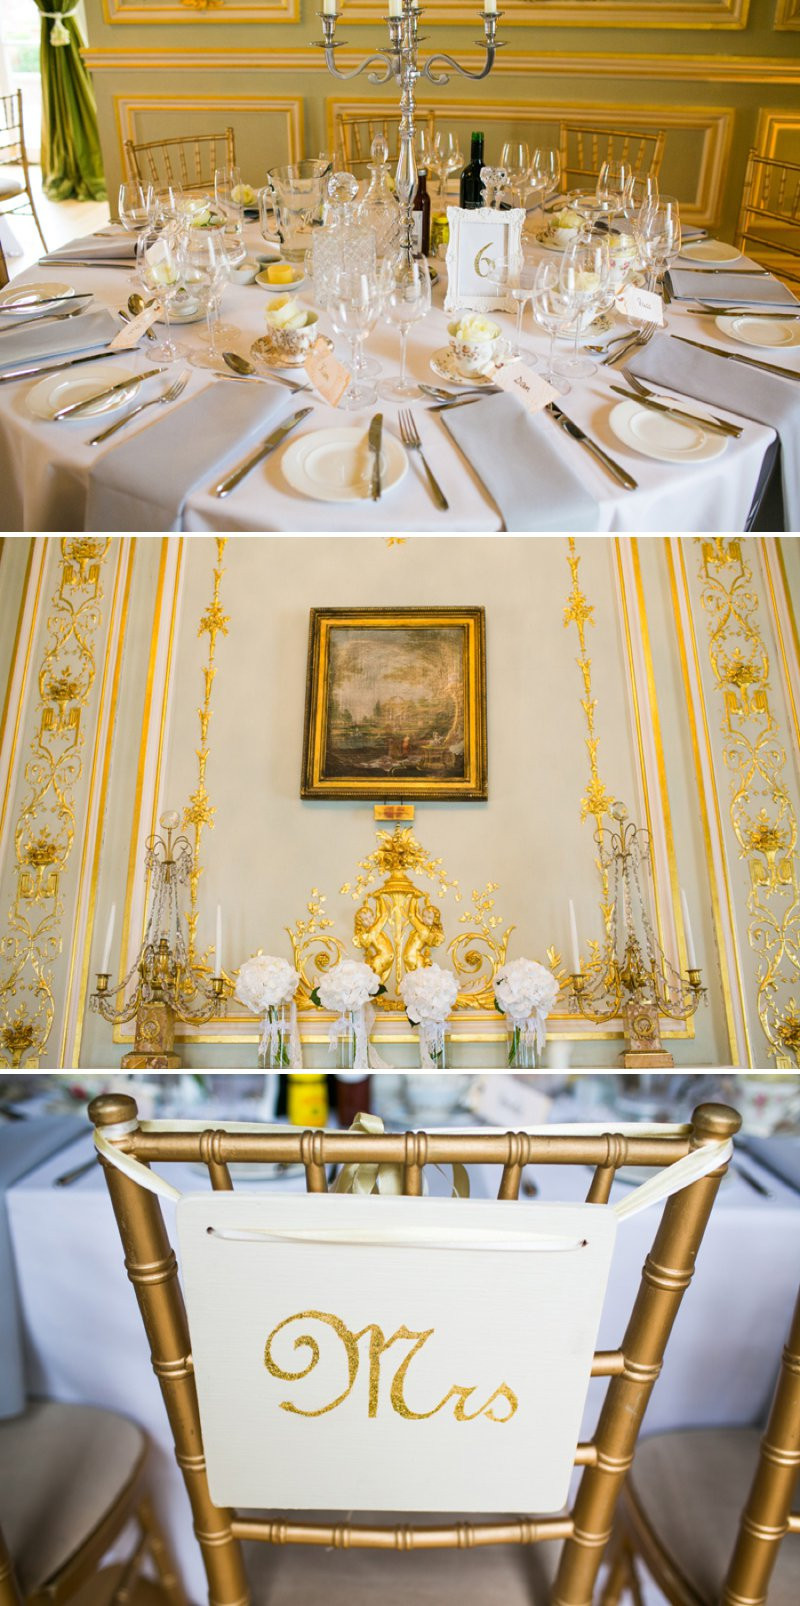 Gold Themed Wedding  An Elegant Gold Themed Wedding At Fetcham Park With Bride